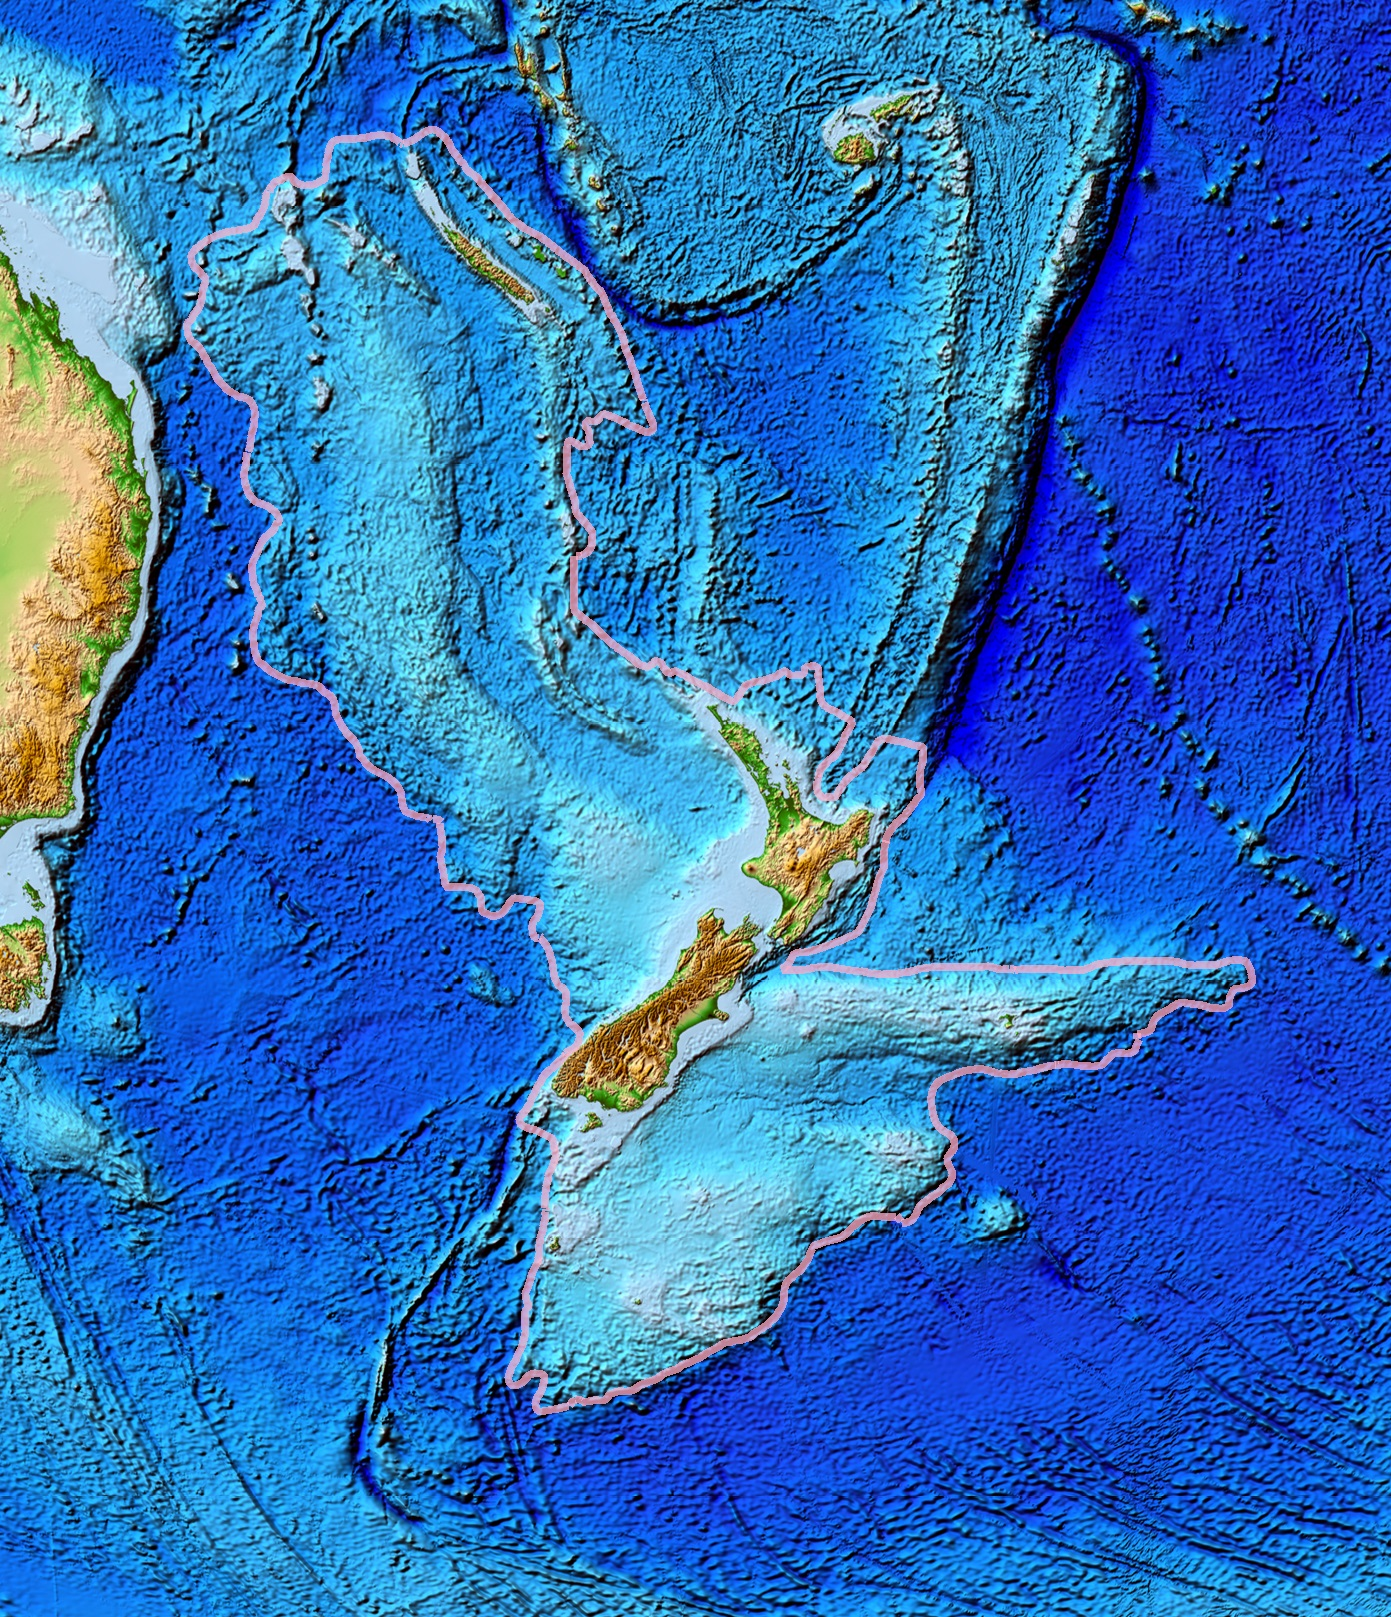 https://upload.wikimedia.org/wikipedia/commons/7/7f/Zealandia_topography.jpg